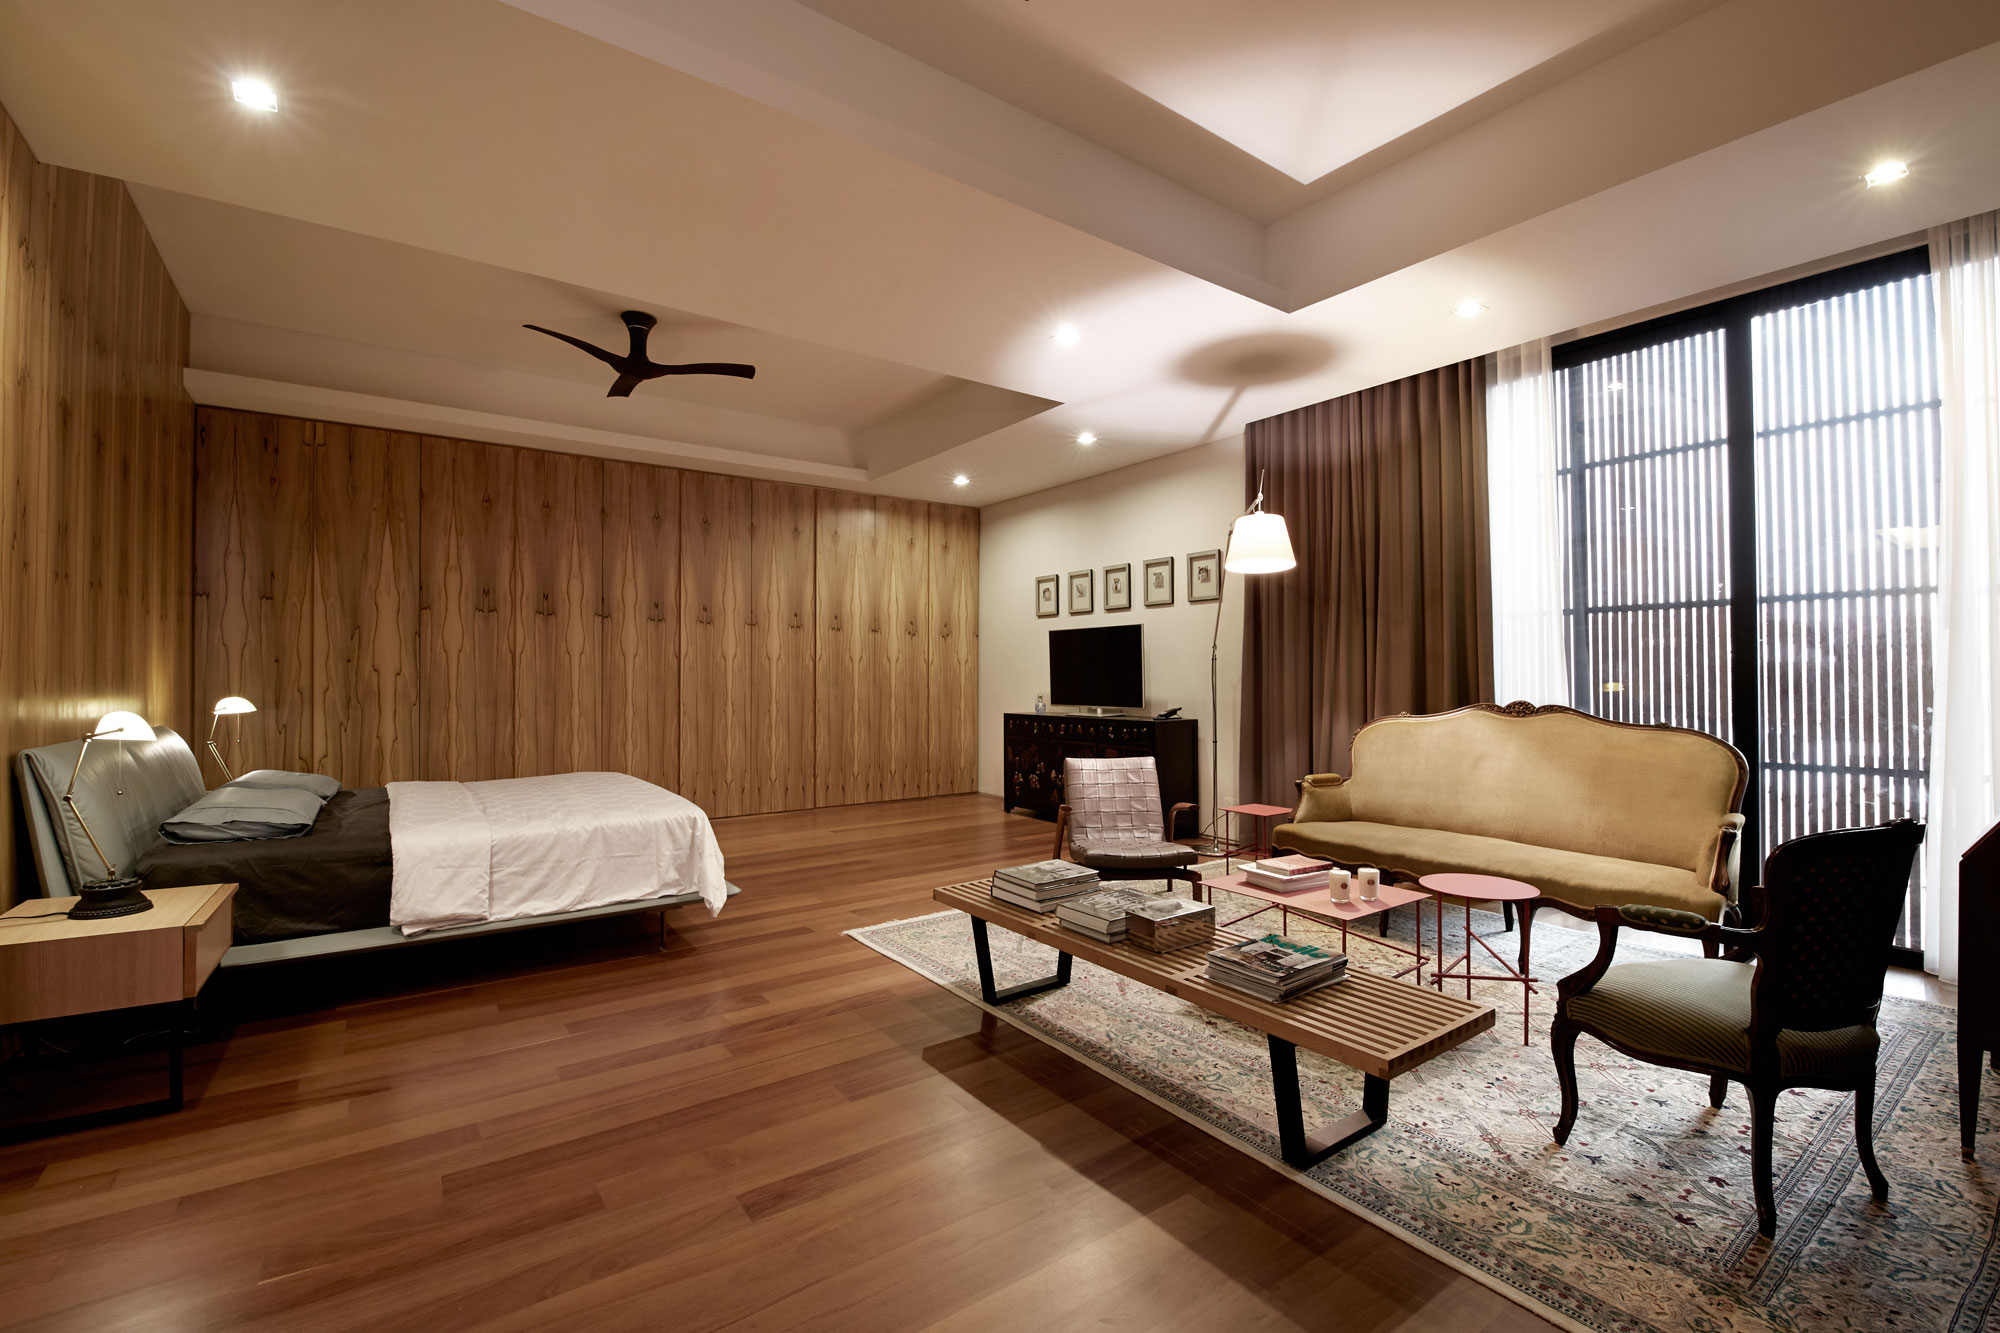 Interlink design solutions creates a spacious eco friendly for Interior design of bungalow